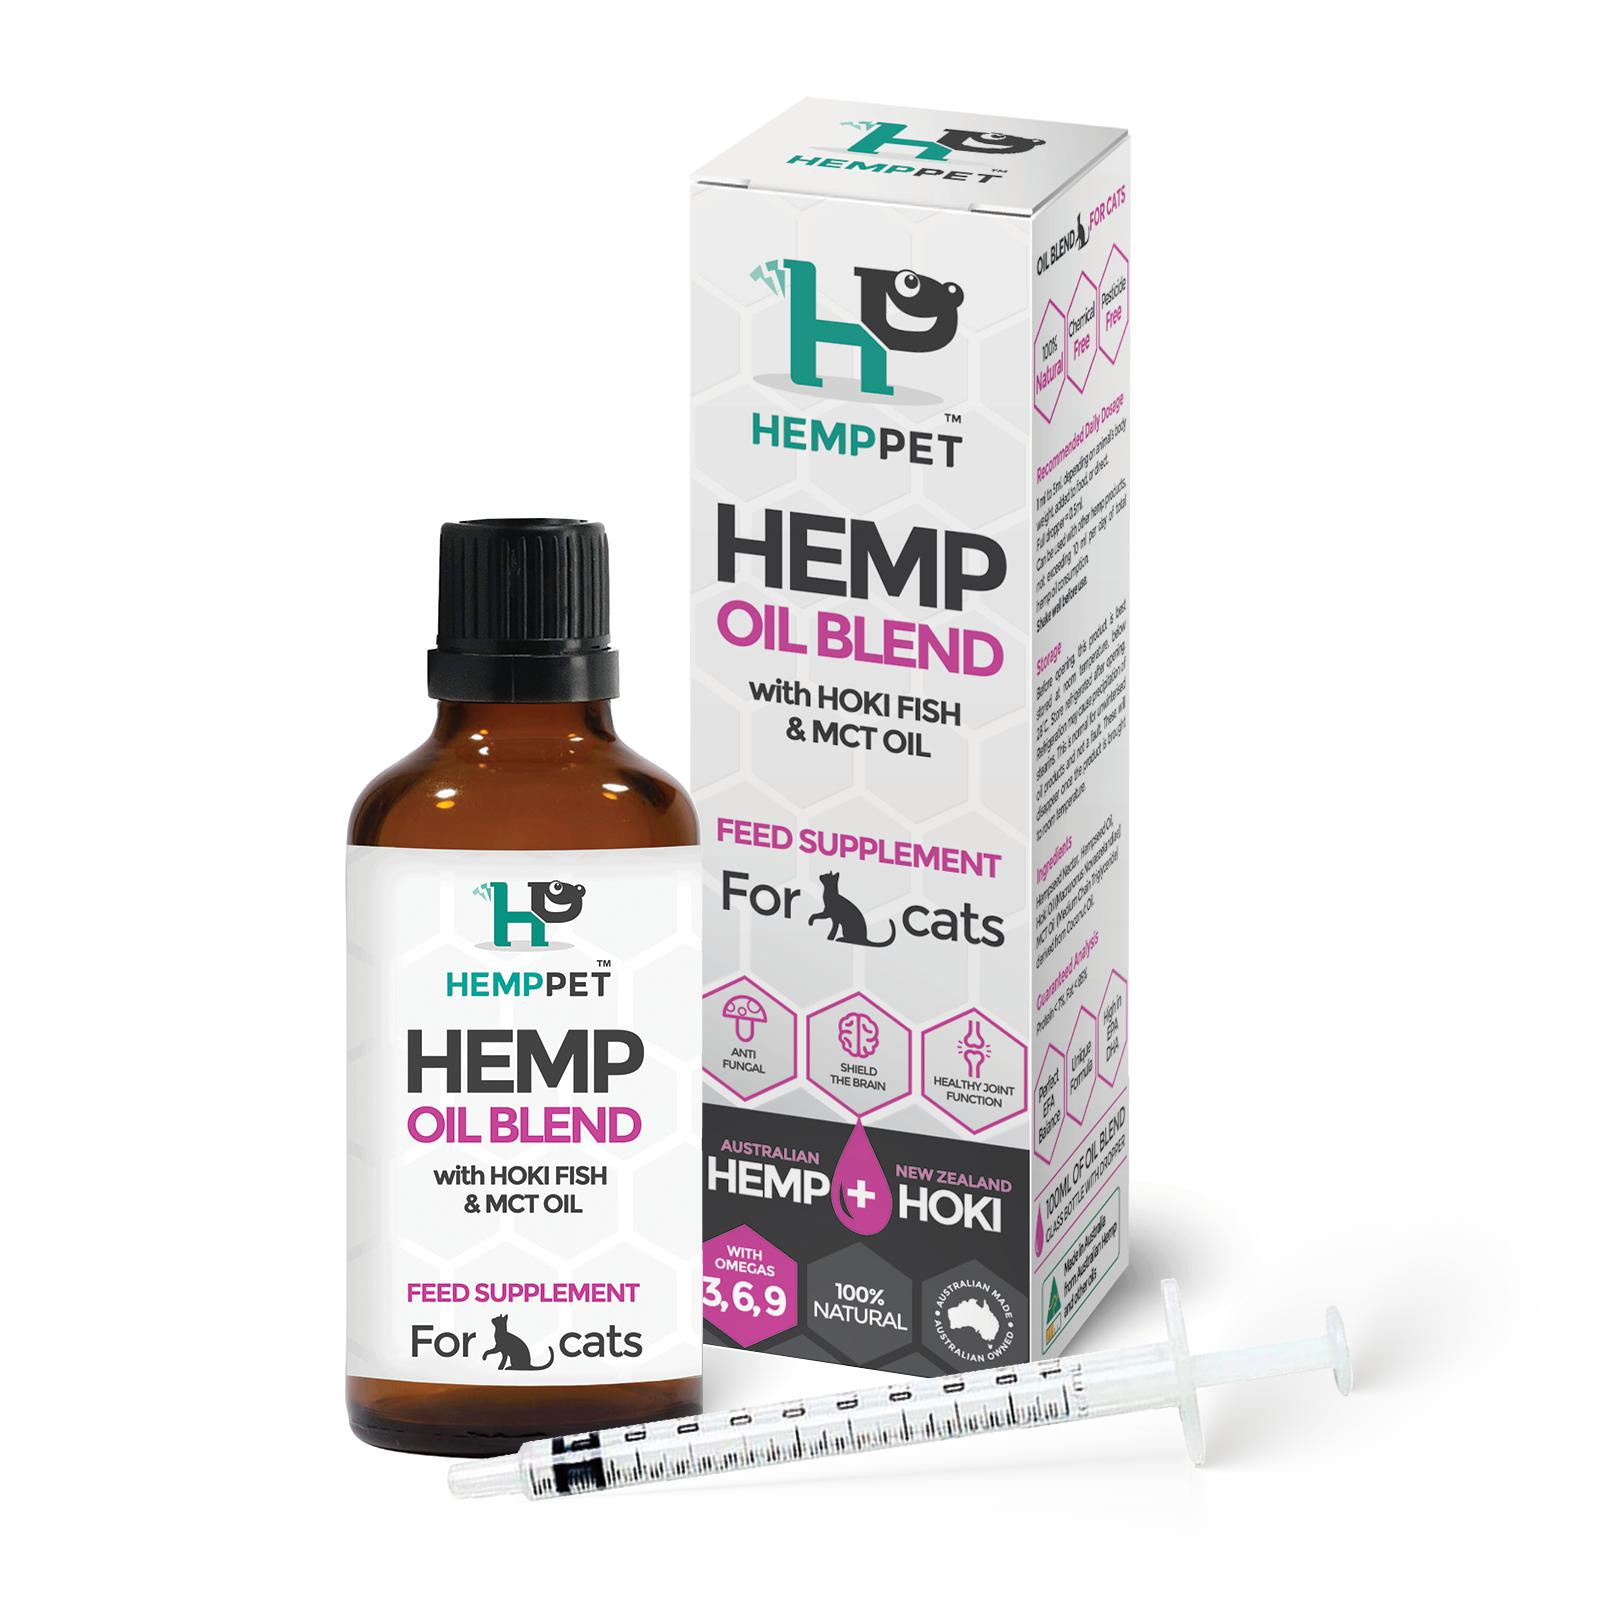 Hemp Oil Blend with Hoki Fish & MCT Oil- For Cats-Pet Products-Hemppet-Hemp Arcade